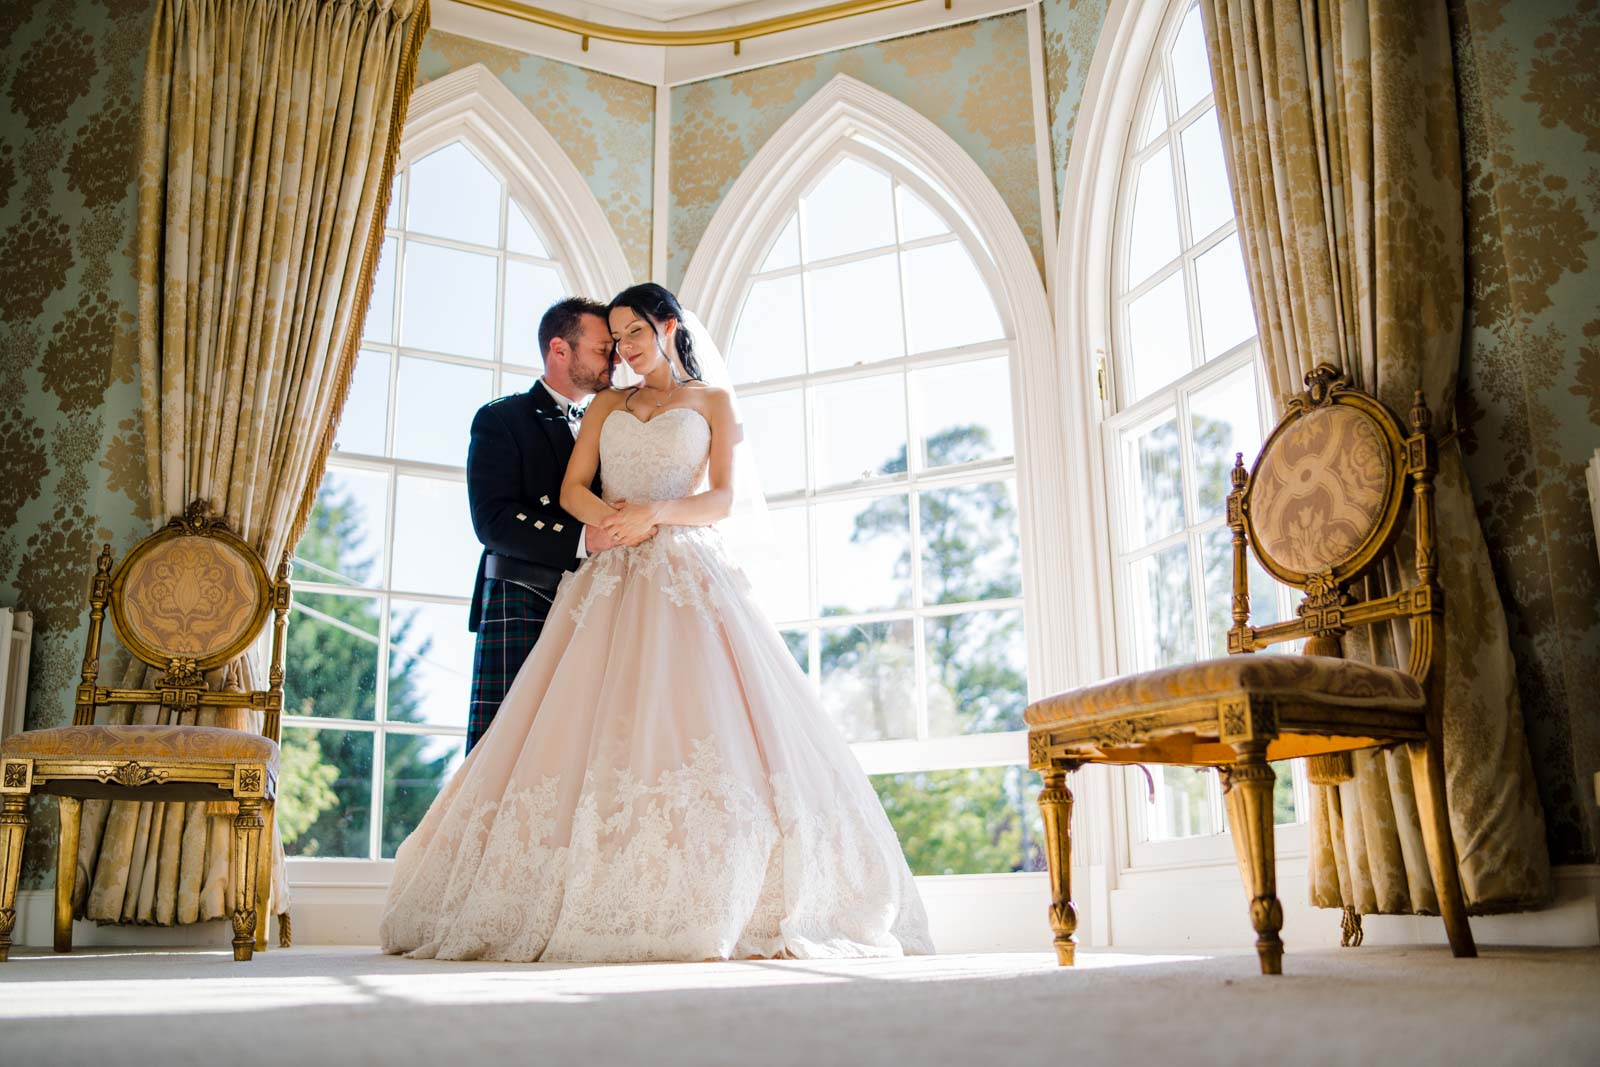 Warwick house wedding photographer, couple embracing in the bridal suite